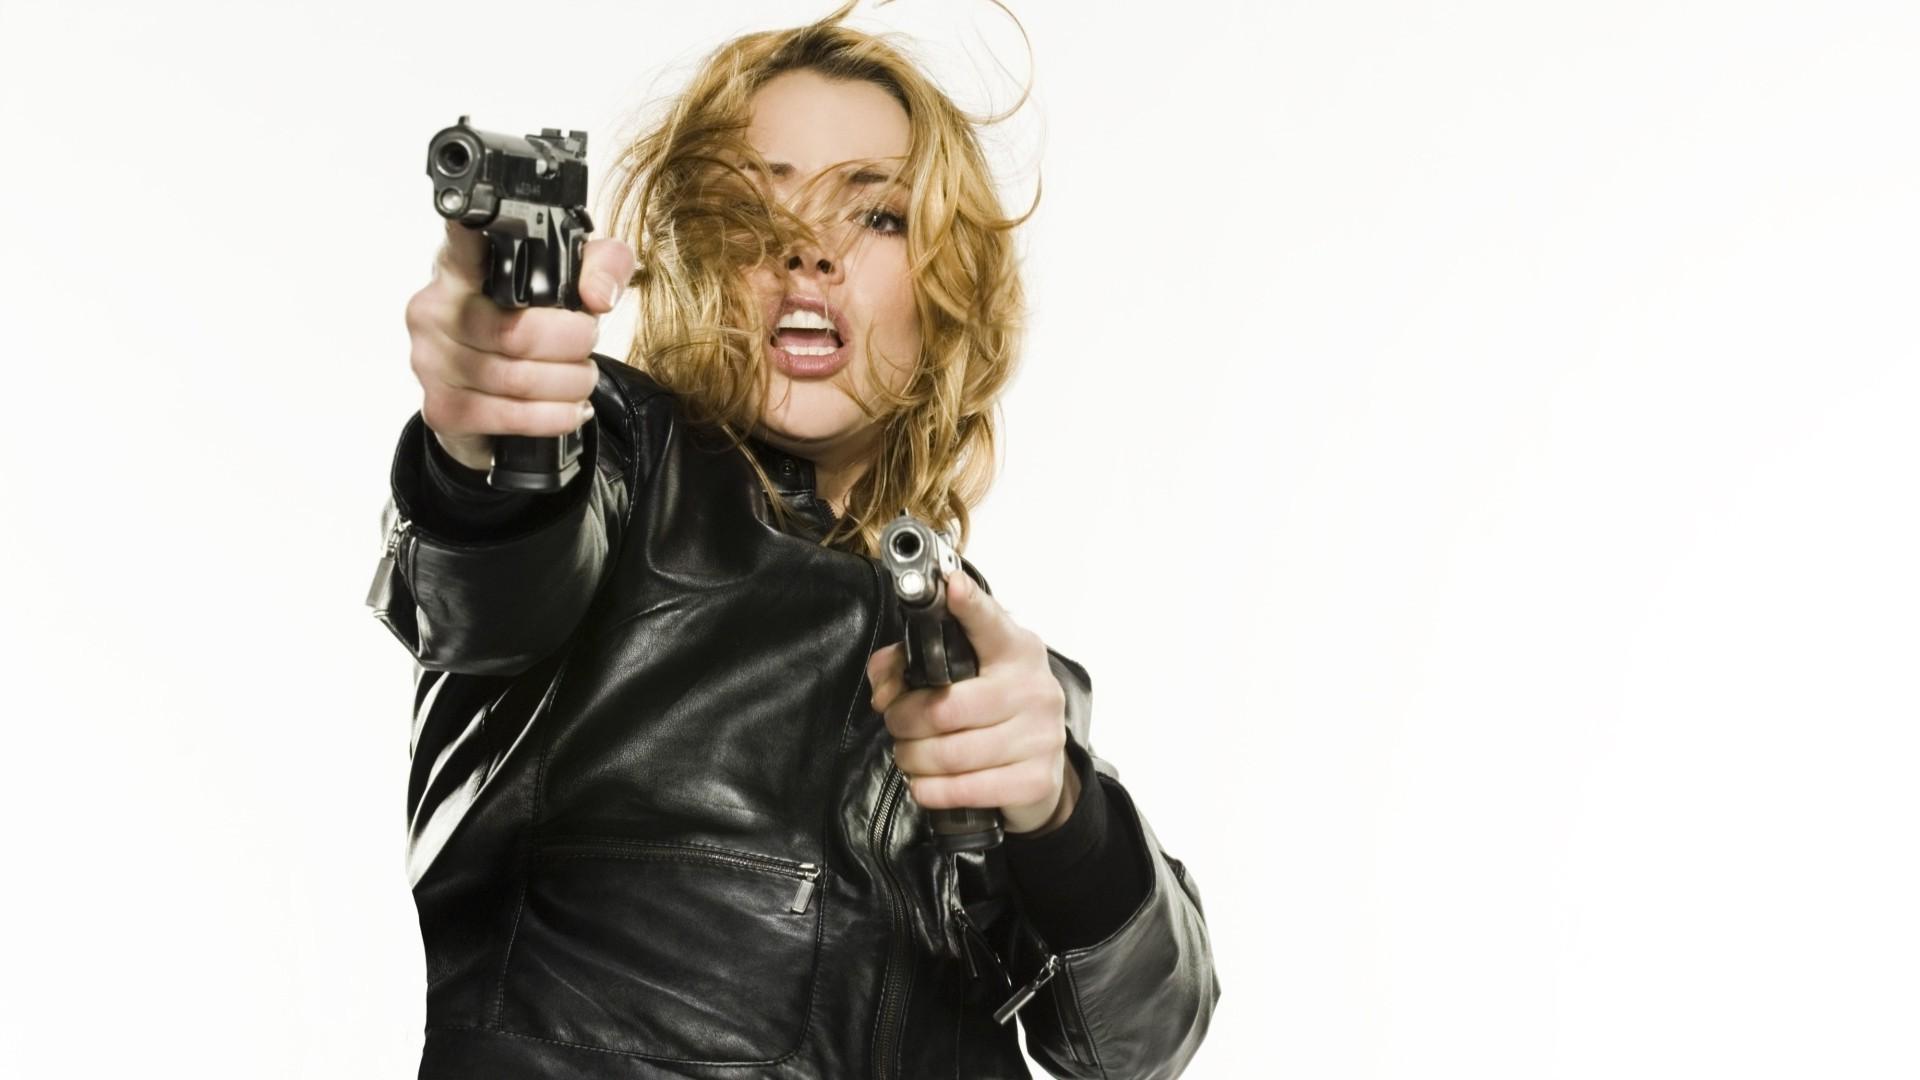 Girl With Guns Android Wallpapers